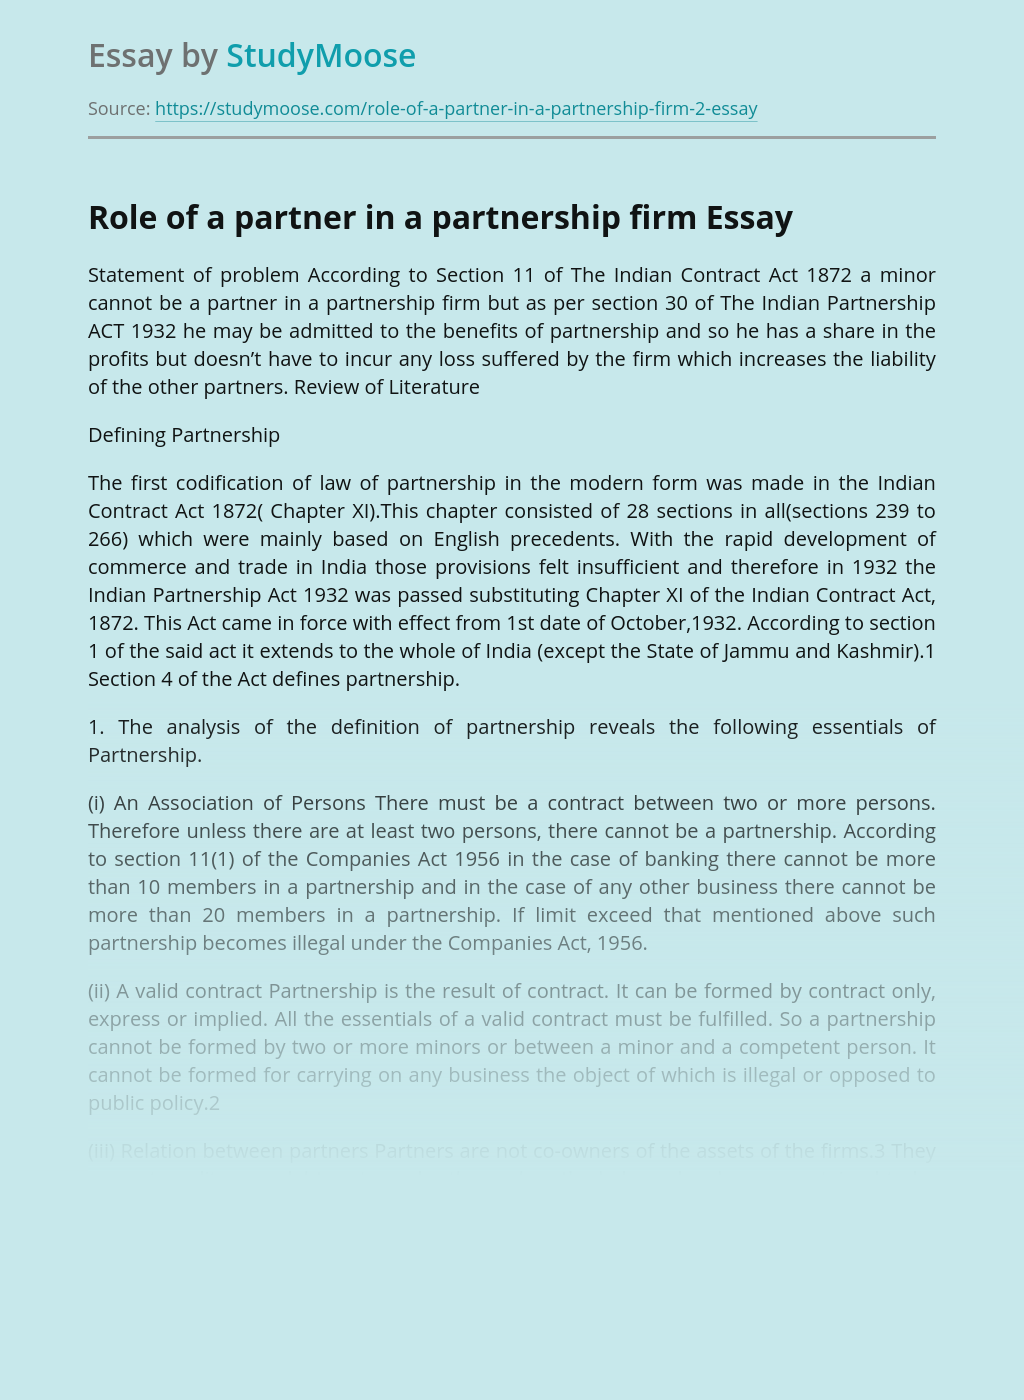 Analysis Role of a Partner in a Partnership Firm